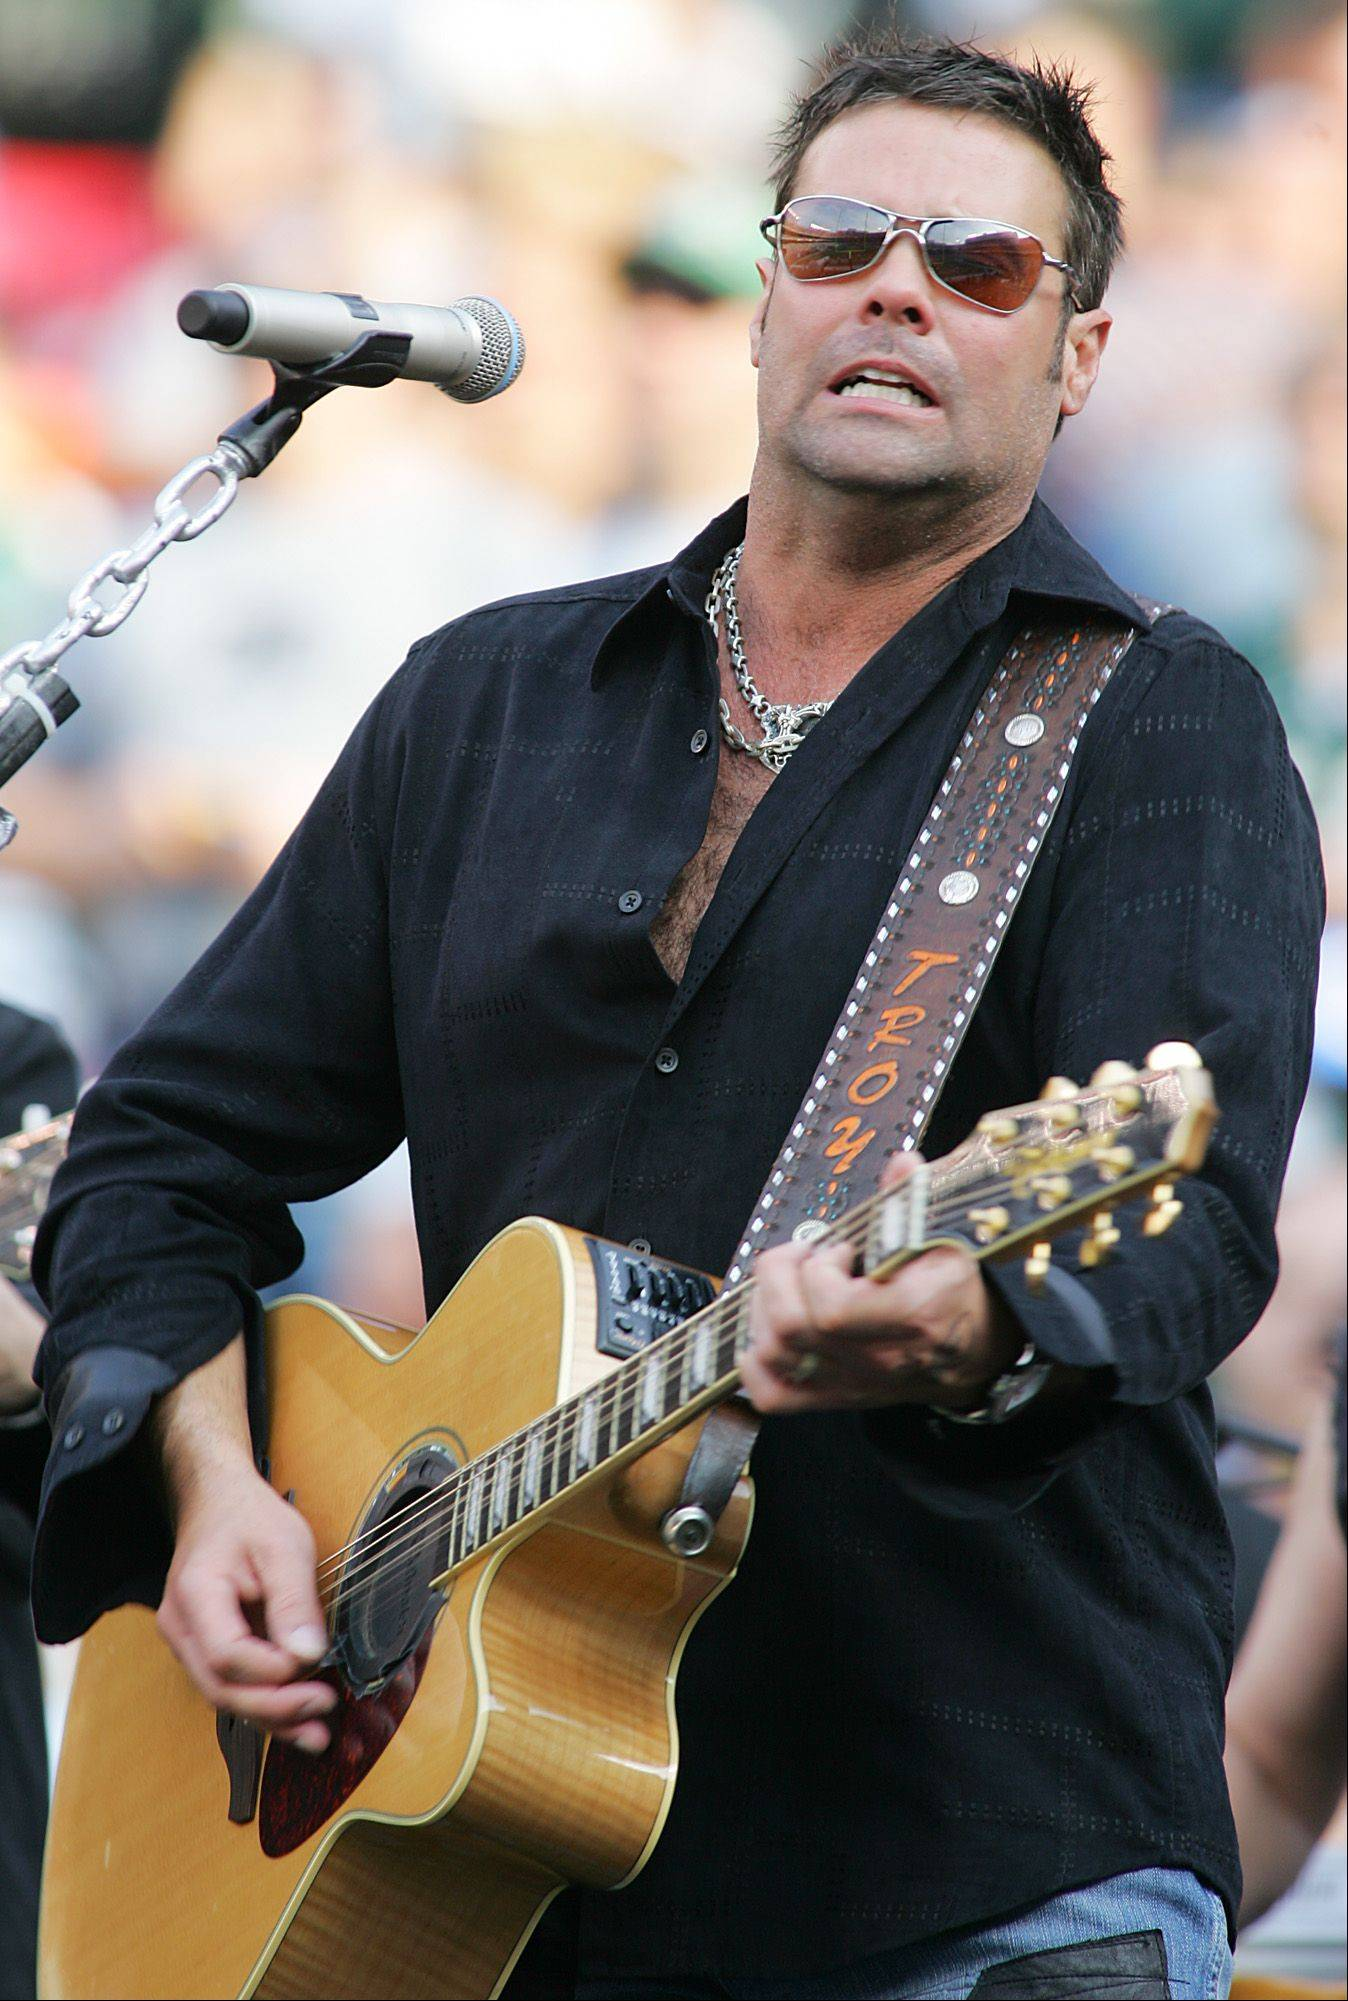 Troy Gentry of the country western group Montgomery Gentry performs at the tail end of the Professional Championship Bullriders: World Tour Finale VI at the Sears Centre Arena in Hoffman Estates.